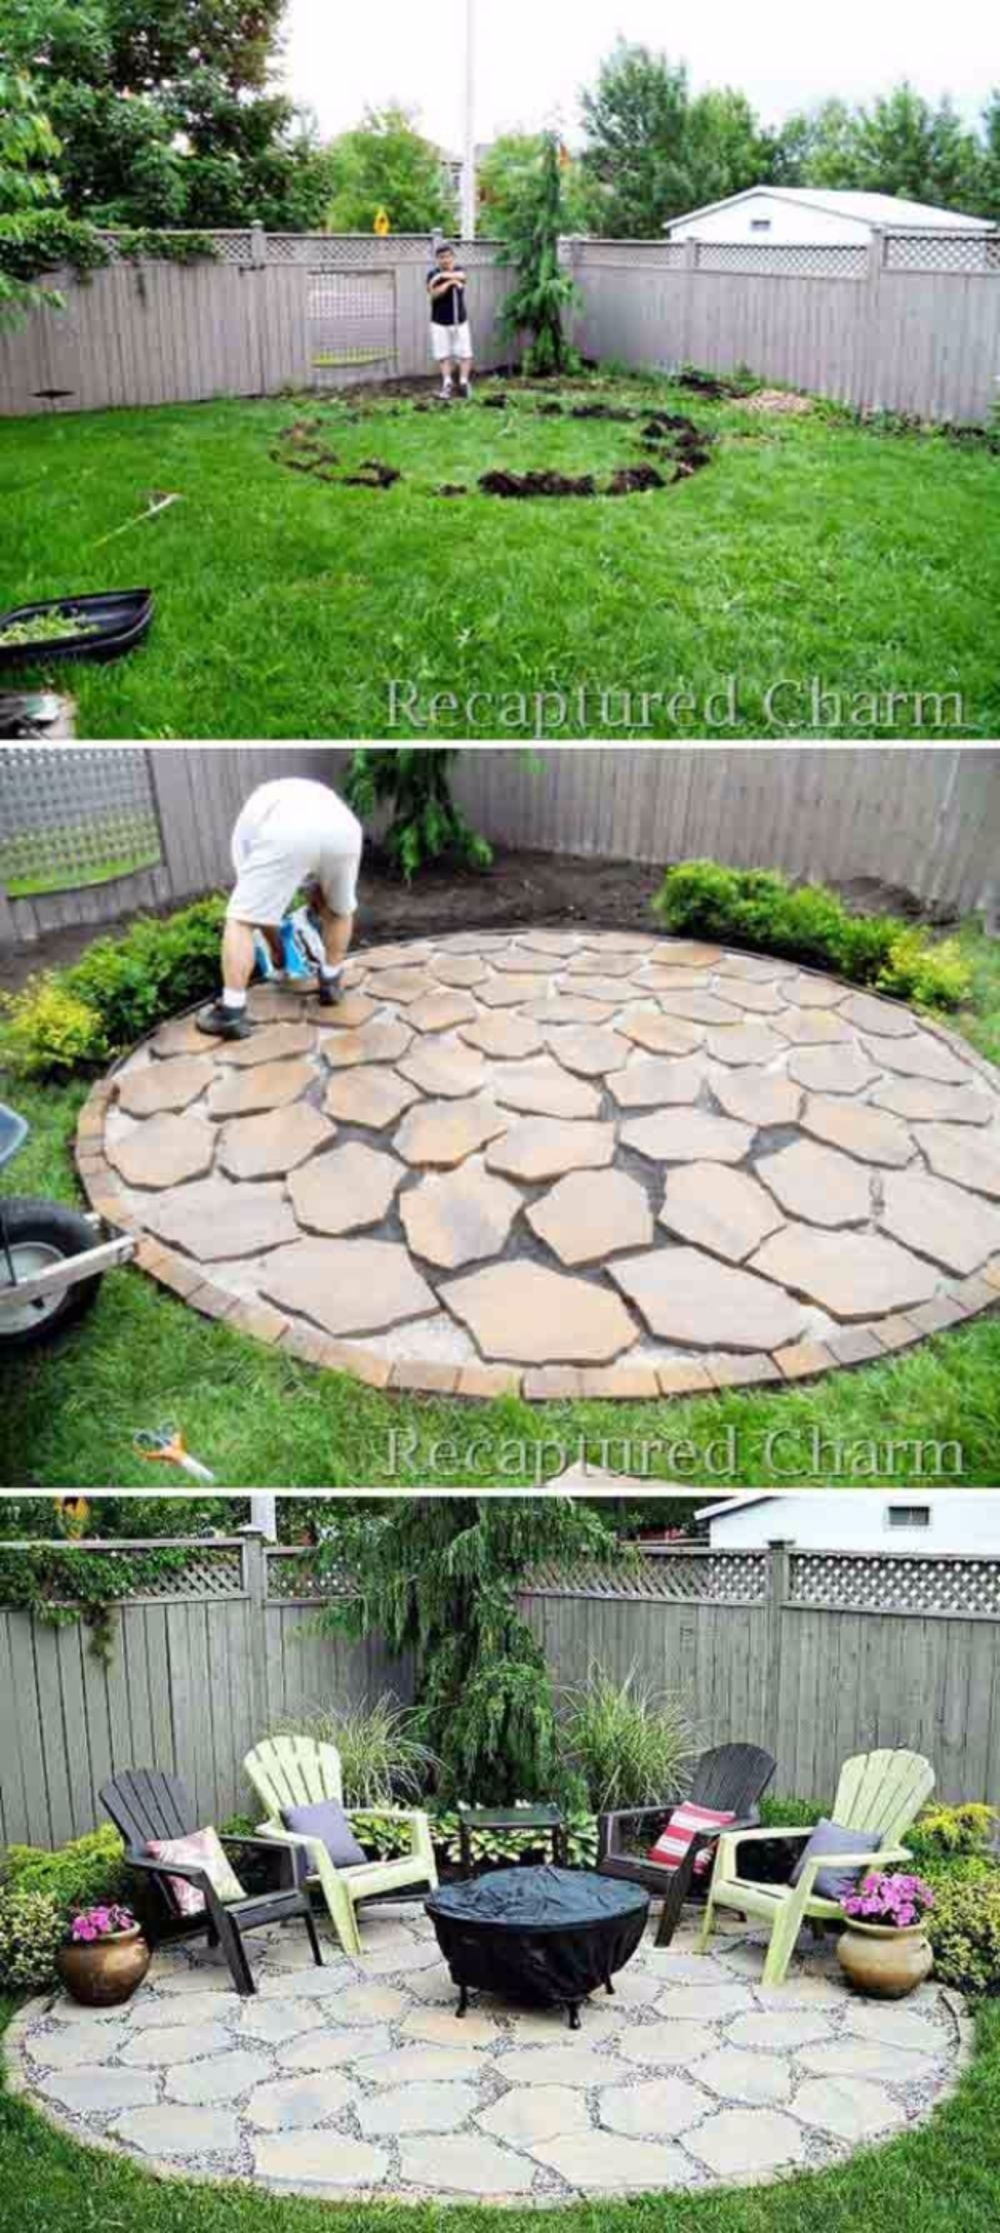 10 Lovely Patio Ideas On A Budget 30 diy patio ideas on a budget diy patio patios and budgeting 2020